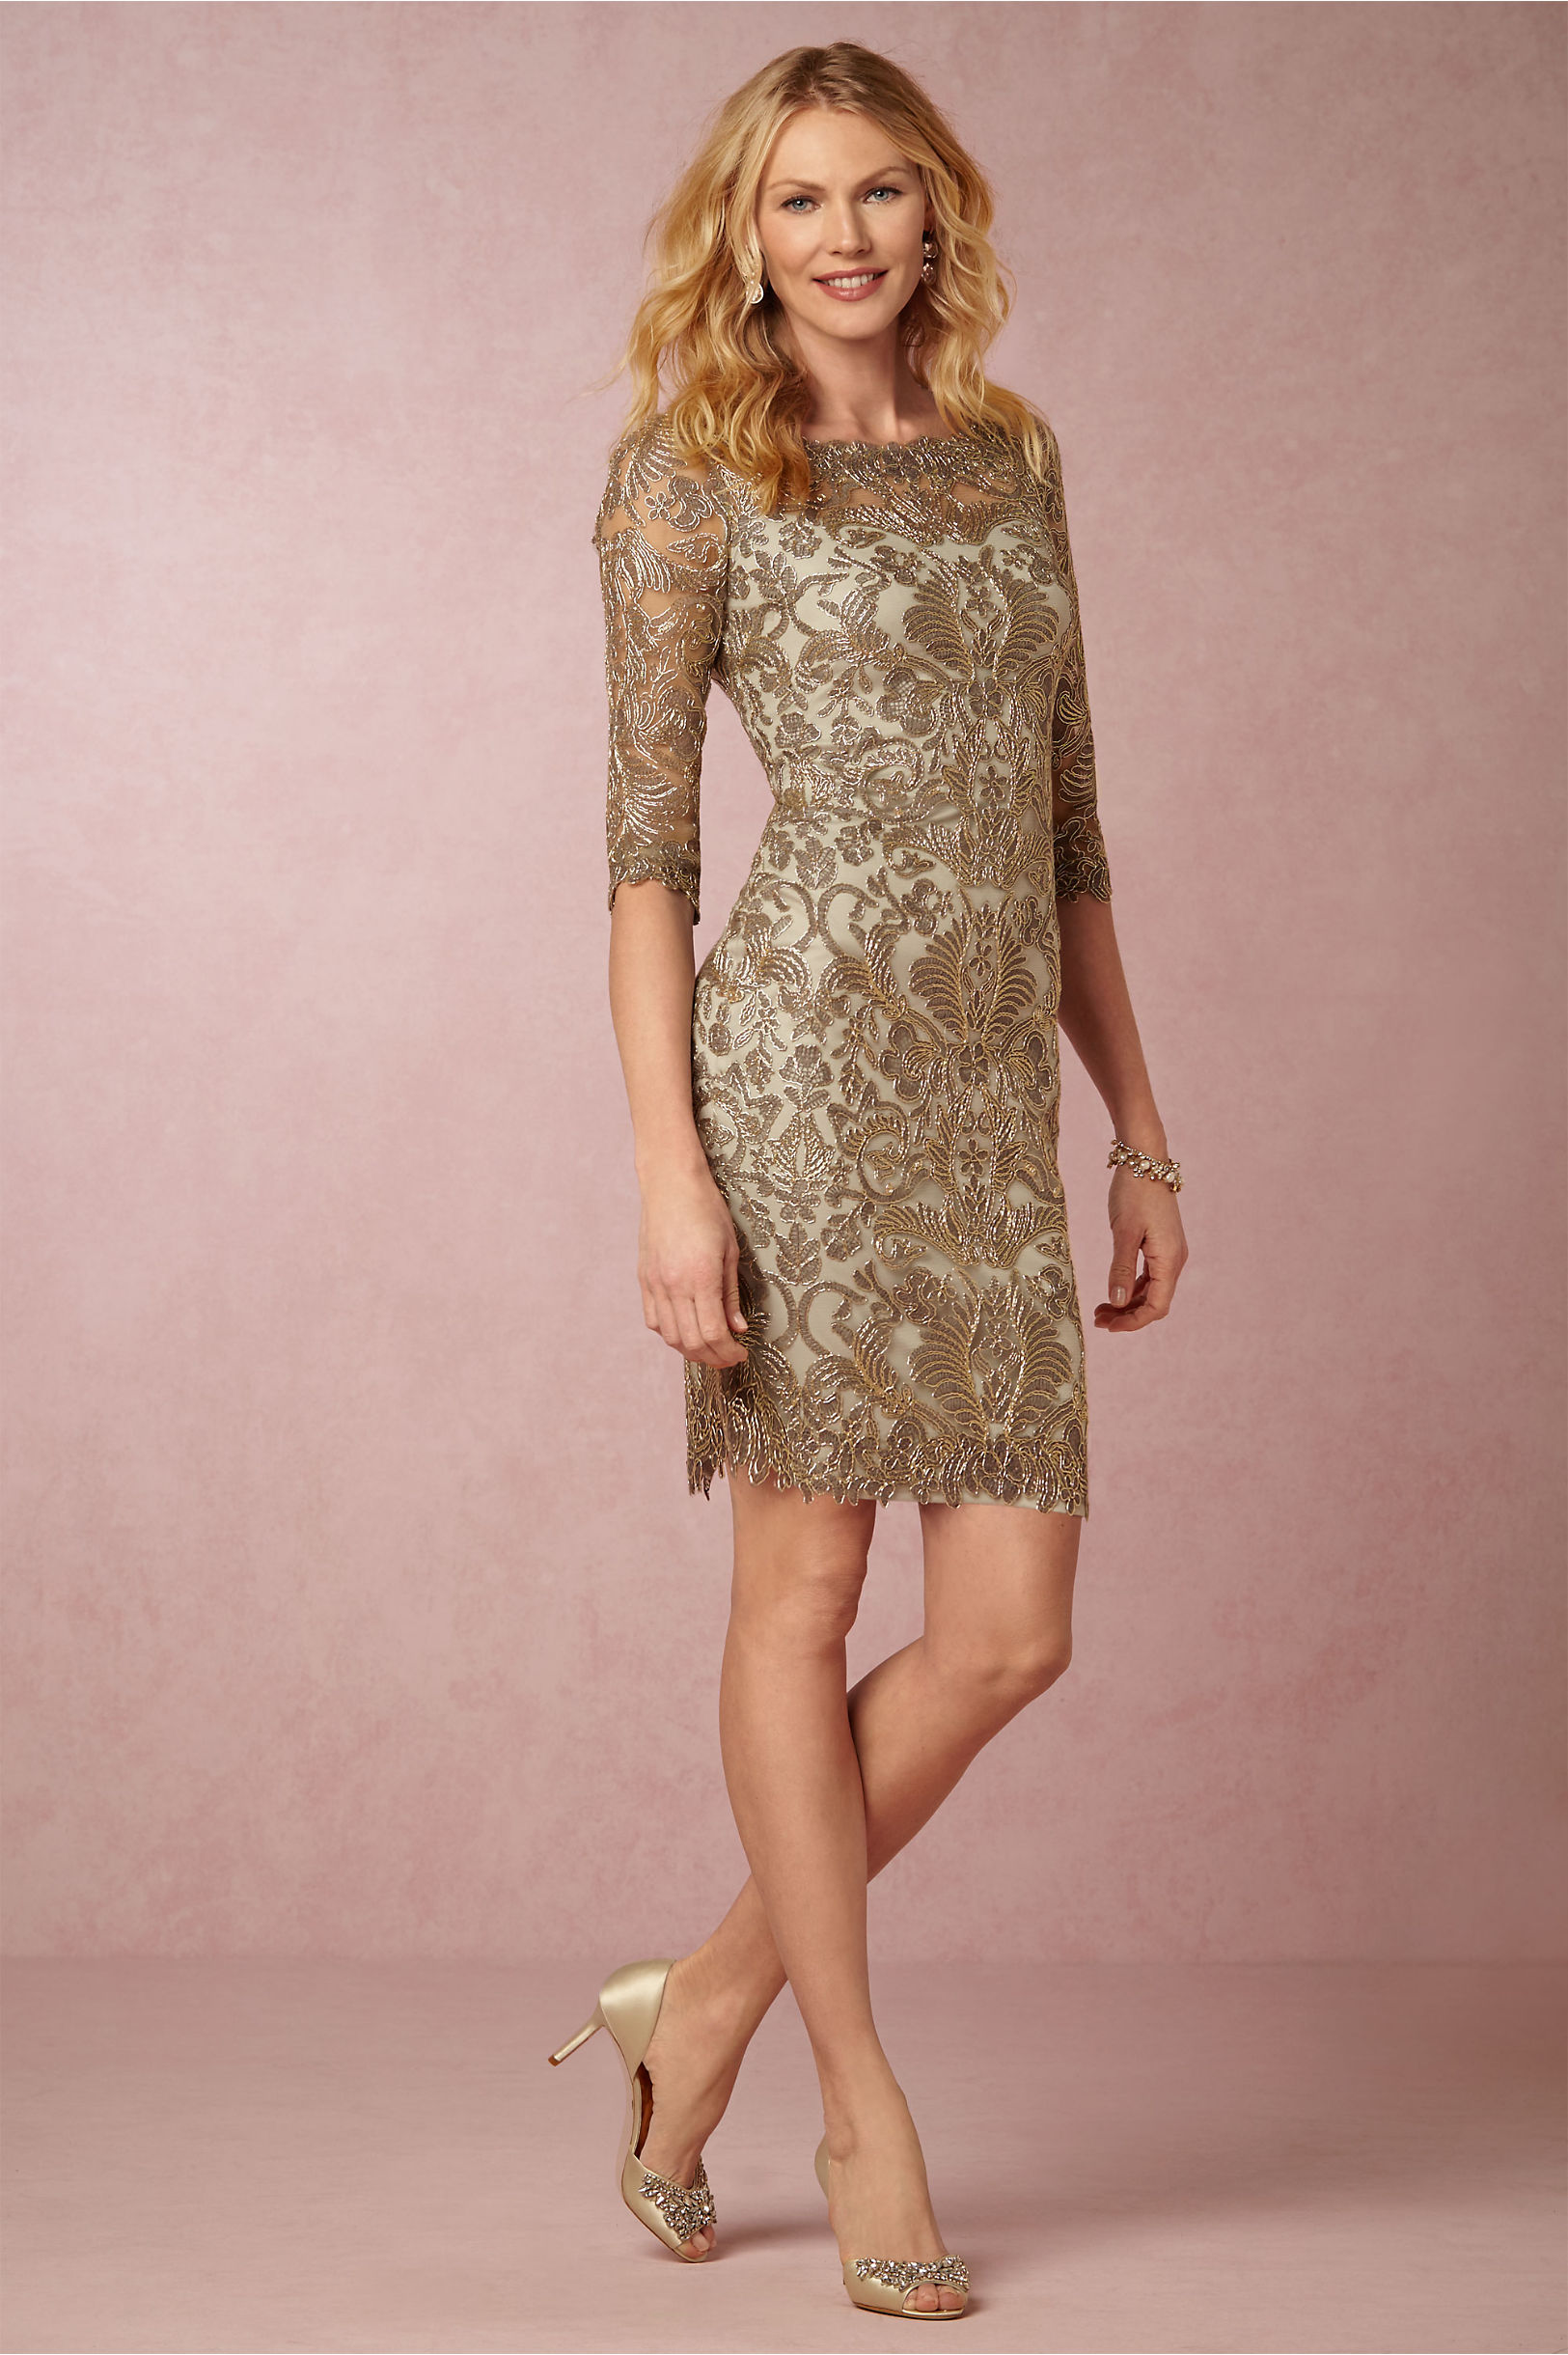 Hartley Dress in Sale | BHLDN